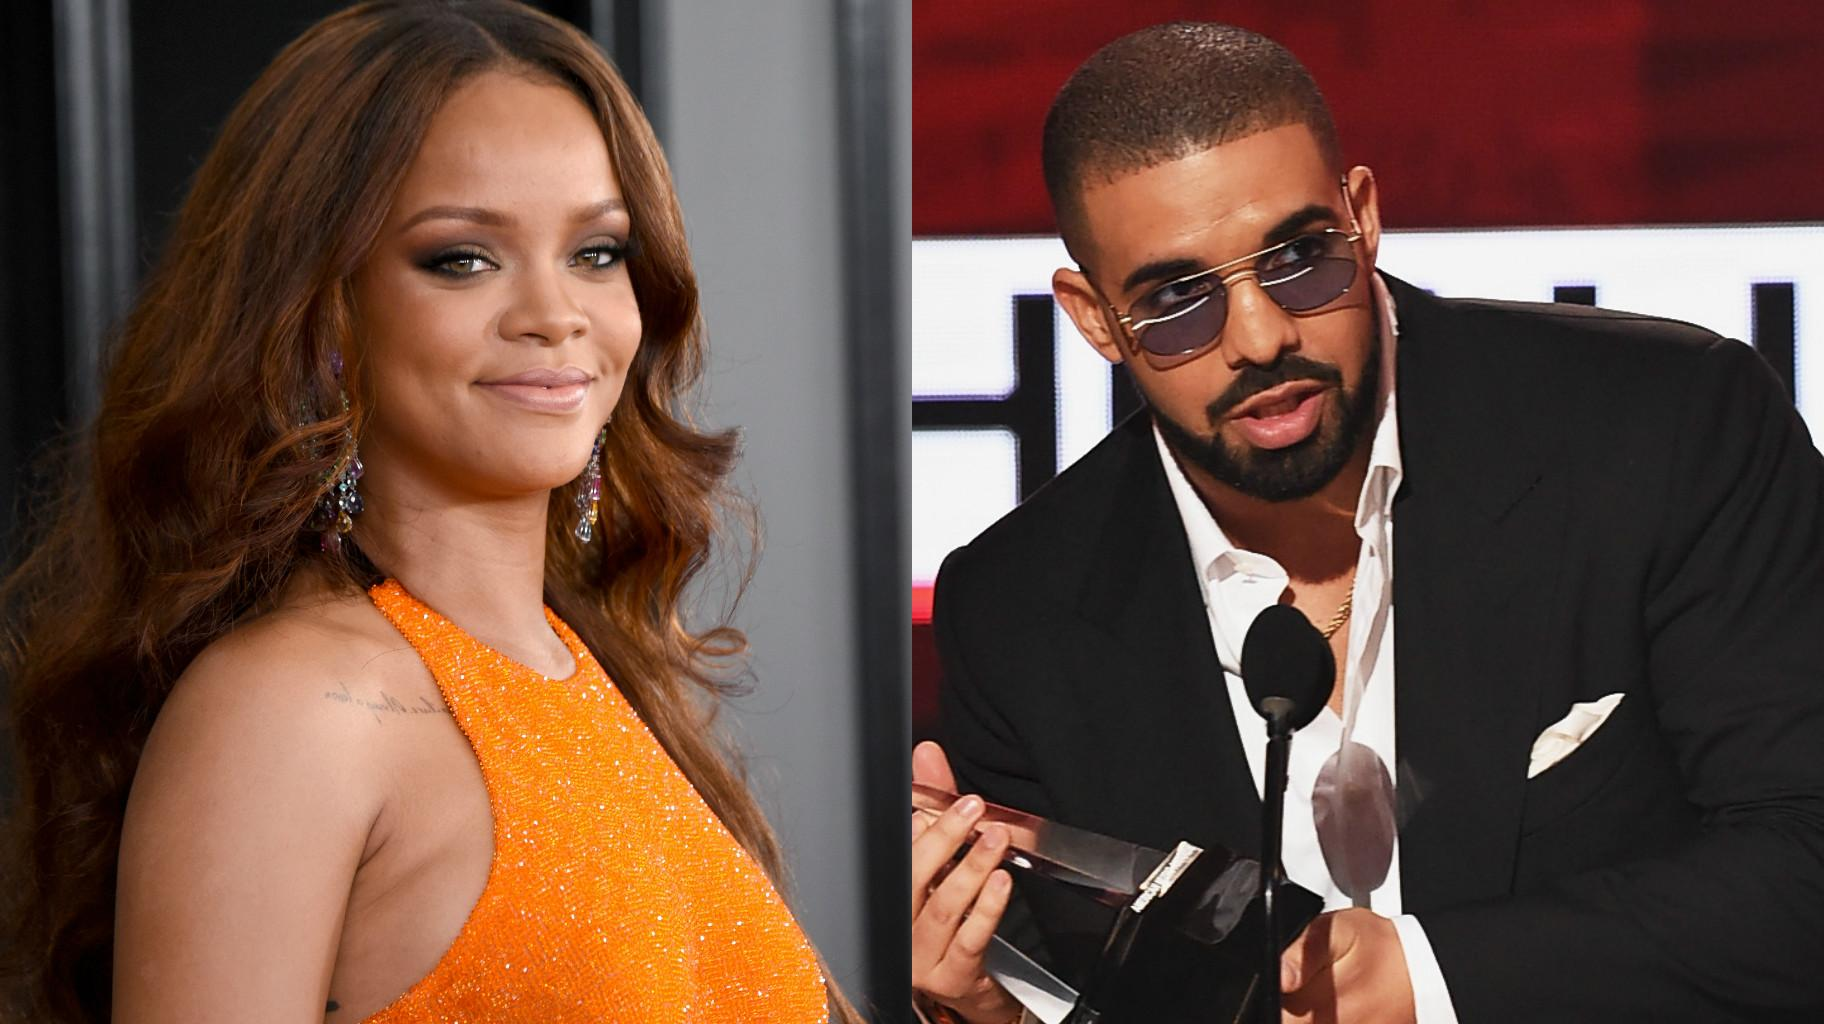 Rihanna's 'Great' Relationship With Hassan Jameel Reportedly Influenced Her Decision To Reconnect With Drake - Here's How!